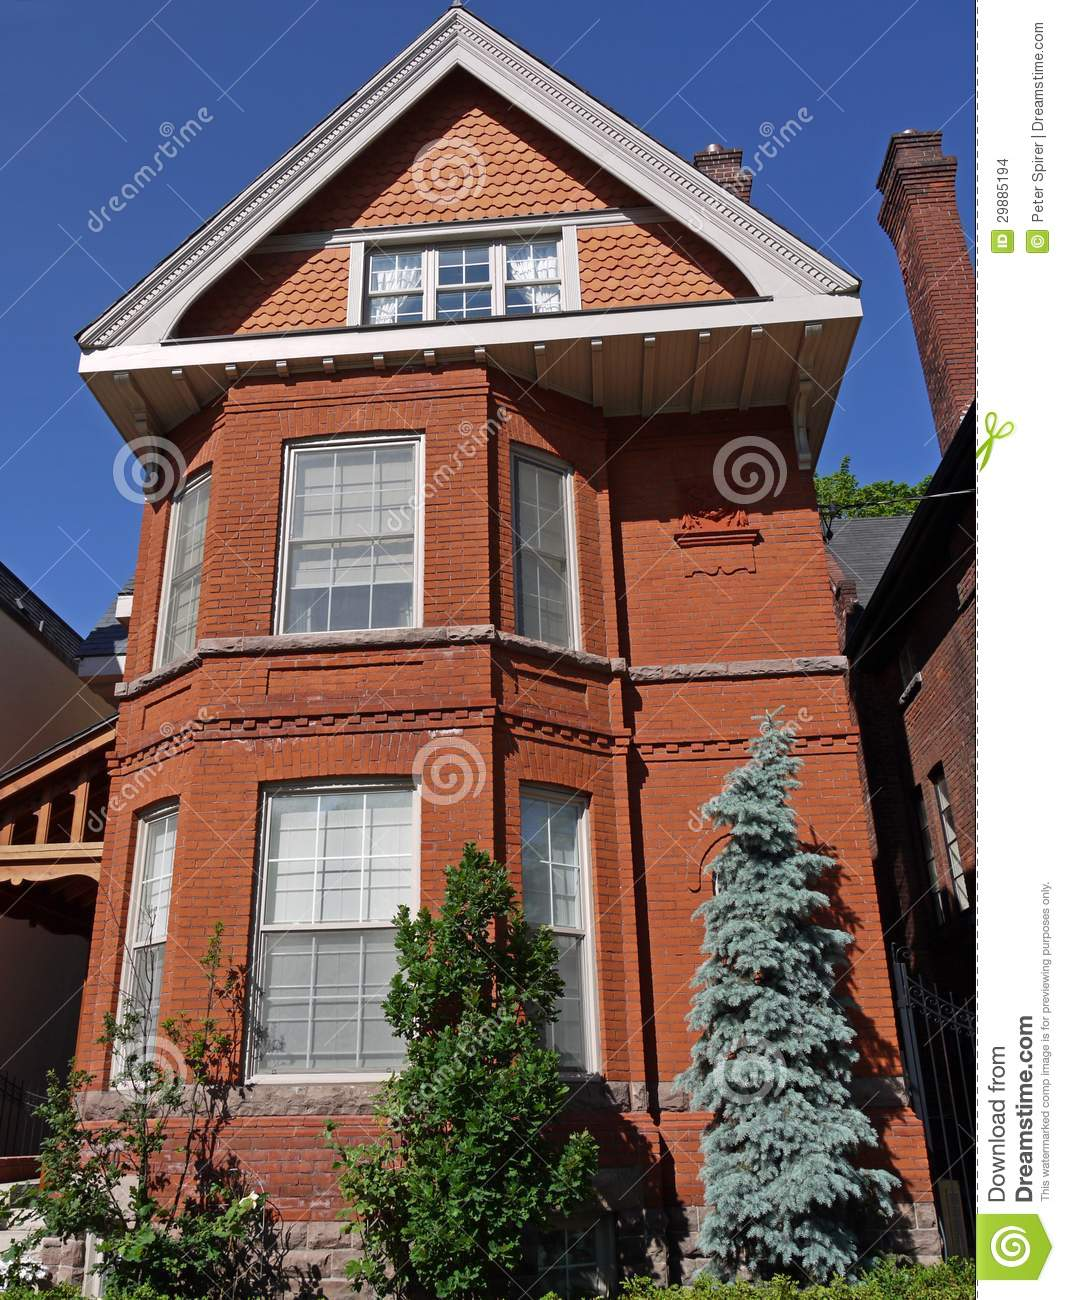 Old Brick House With Large Gable In The Victorian Style